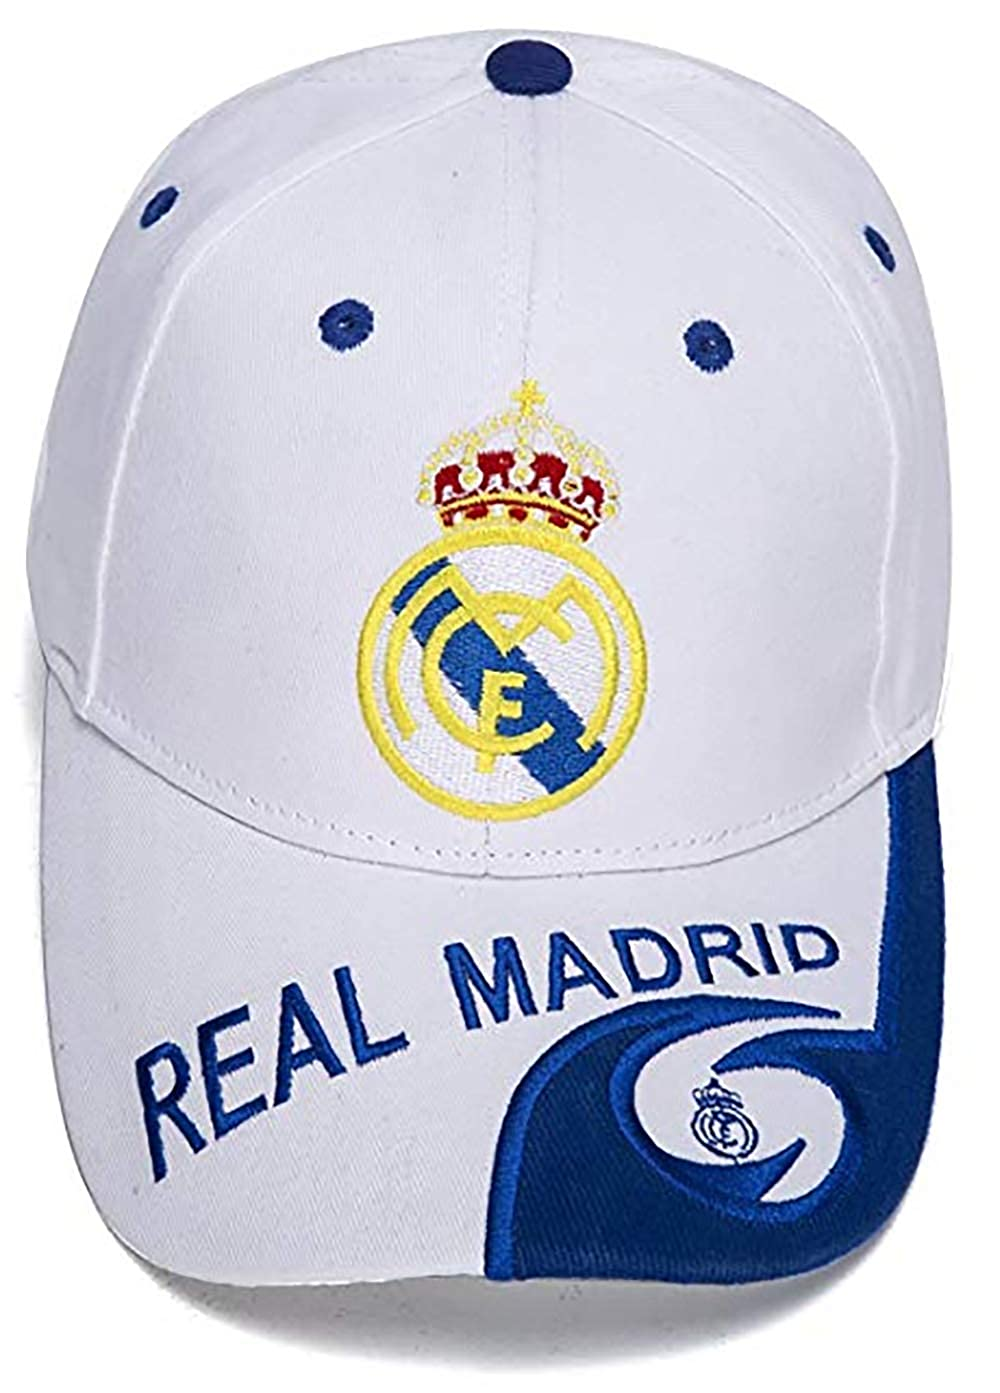 Real Madrid New Embroidered Authentic Adjustable Baseball Cap Color White